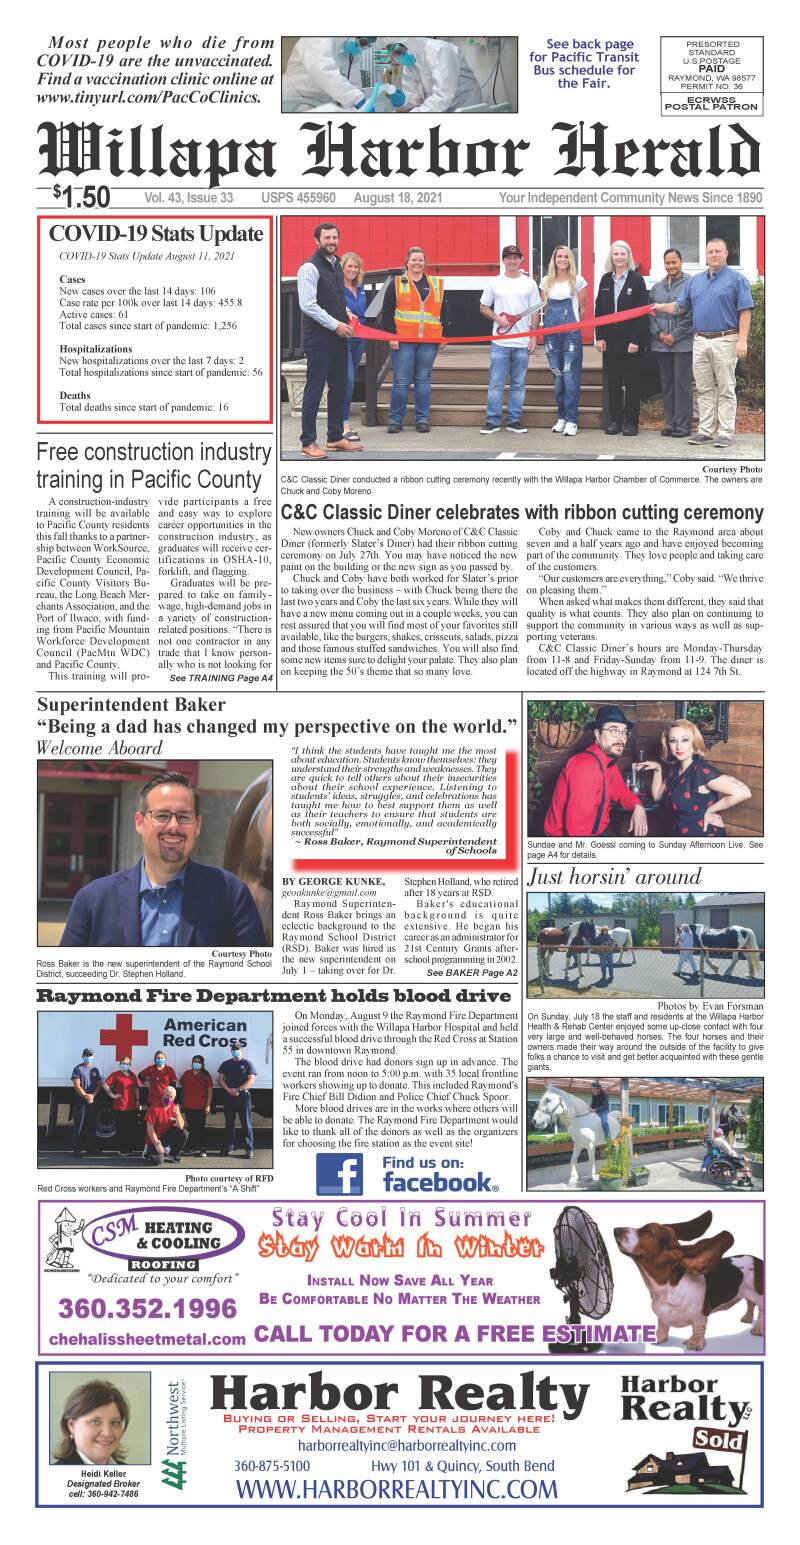 August 18, 2021 Willapa Harbor Herald and Pacific County Press